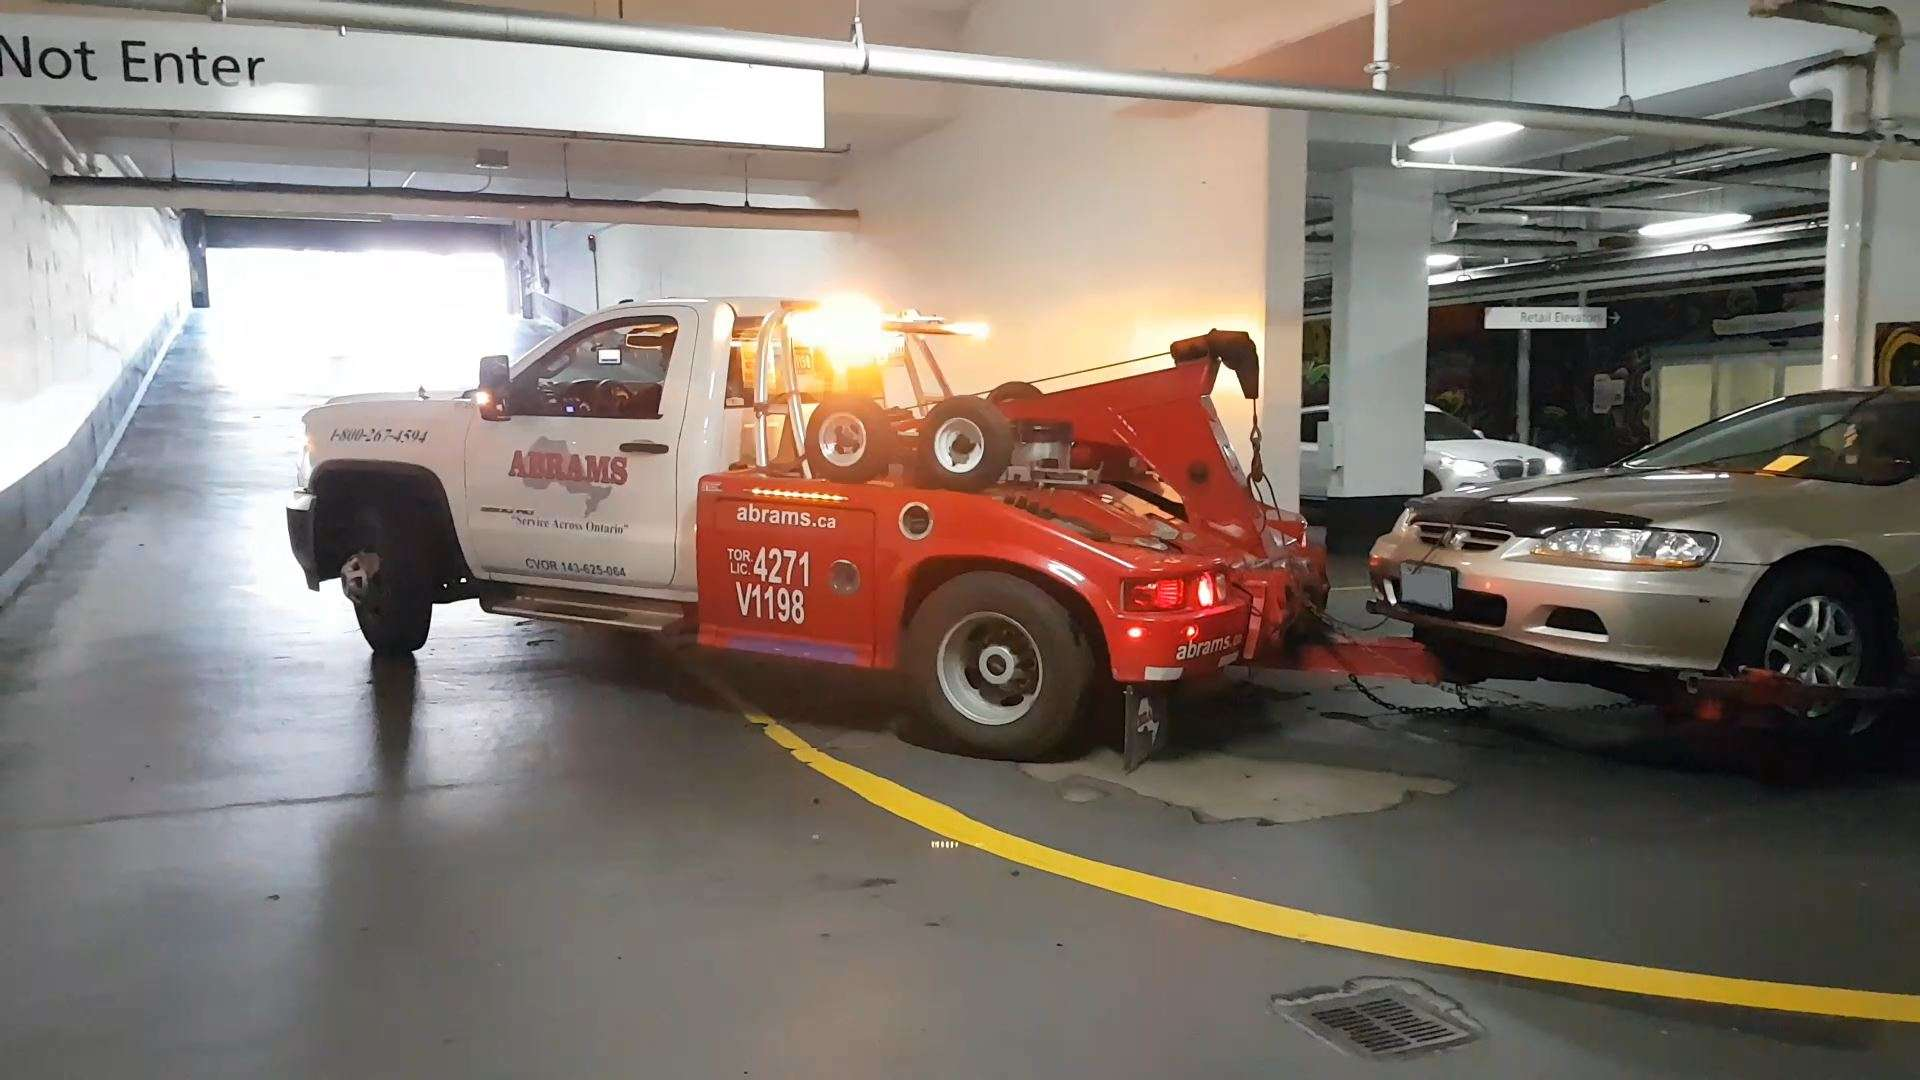 Tow truck driver pulls the car up the underground parking garage ramp